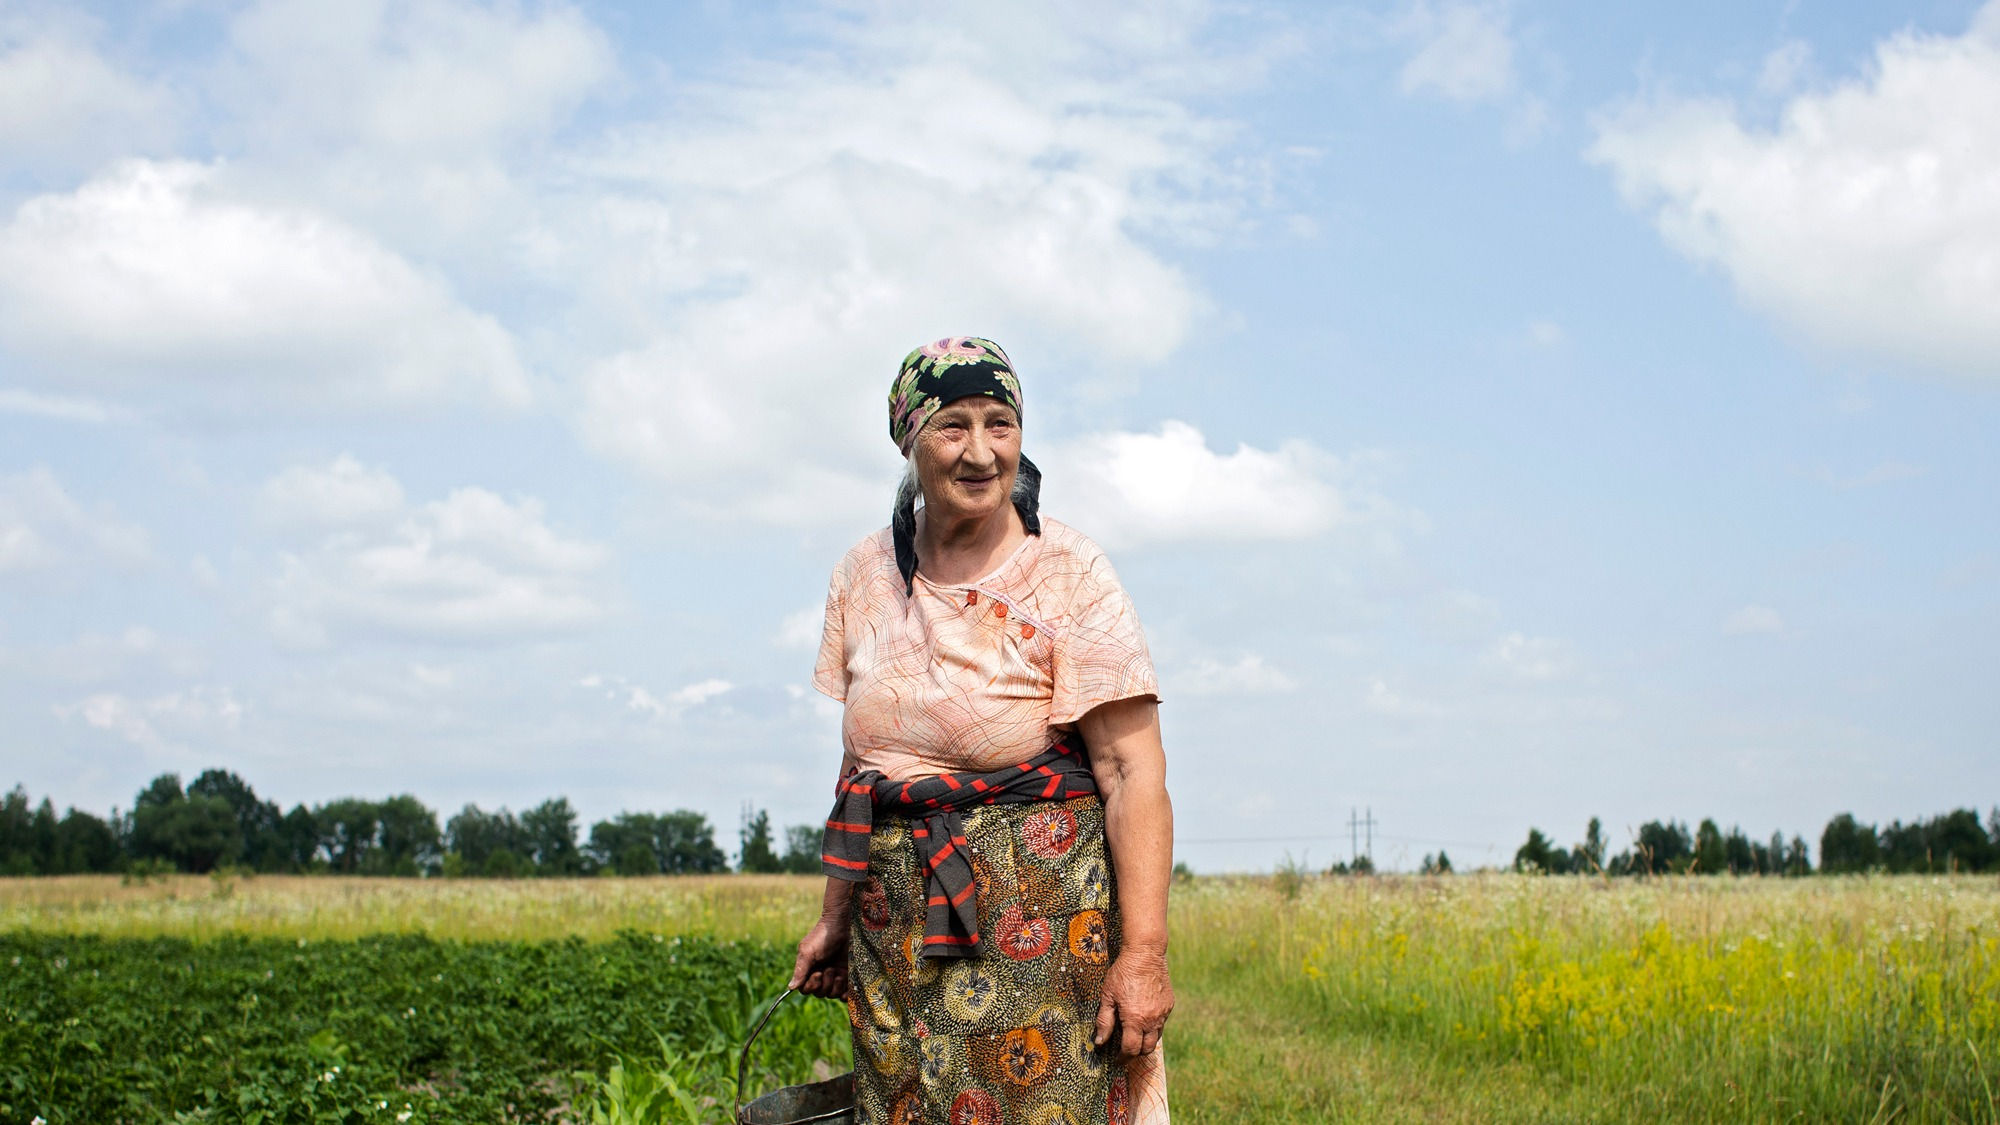 and old woman in a field